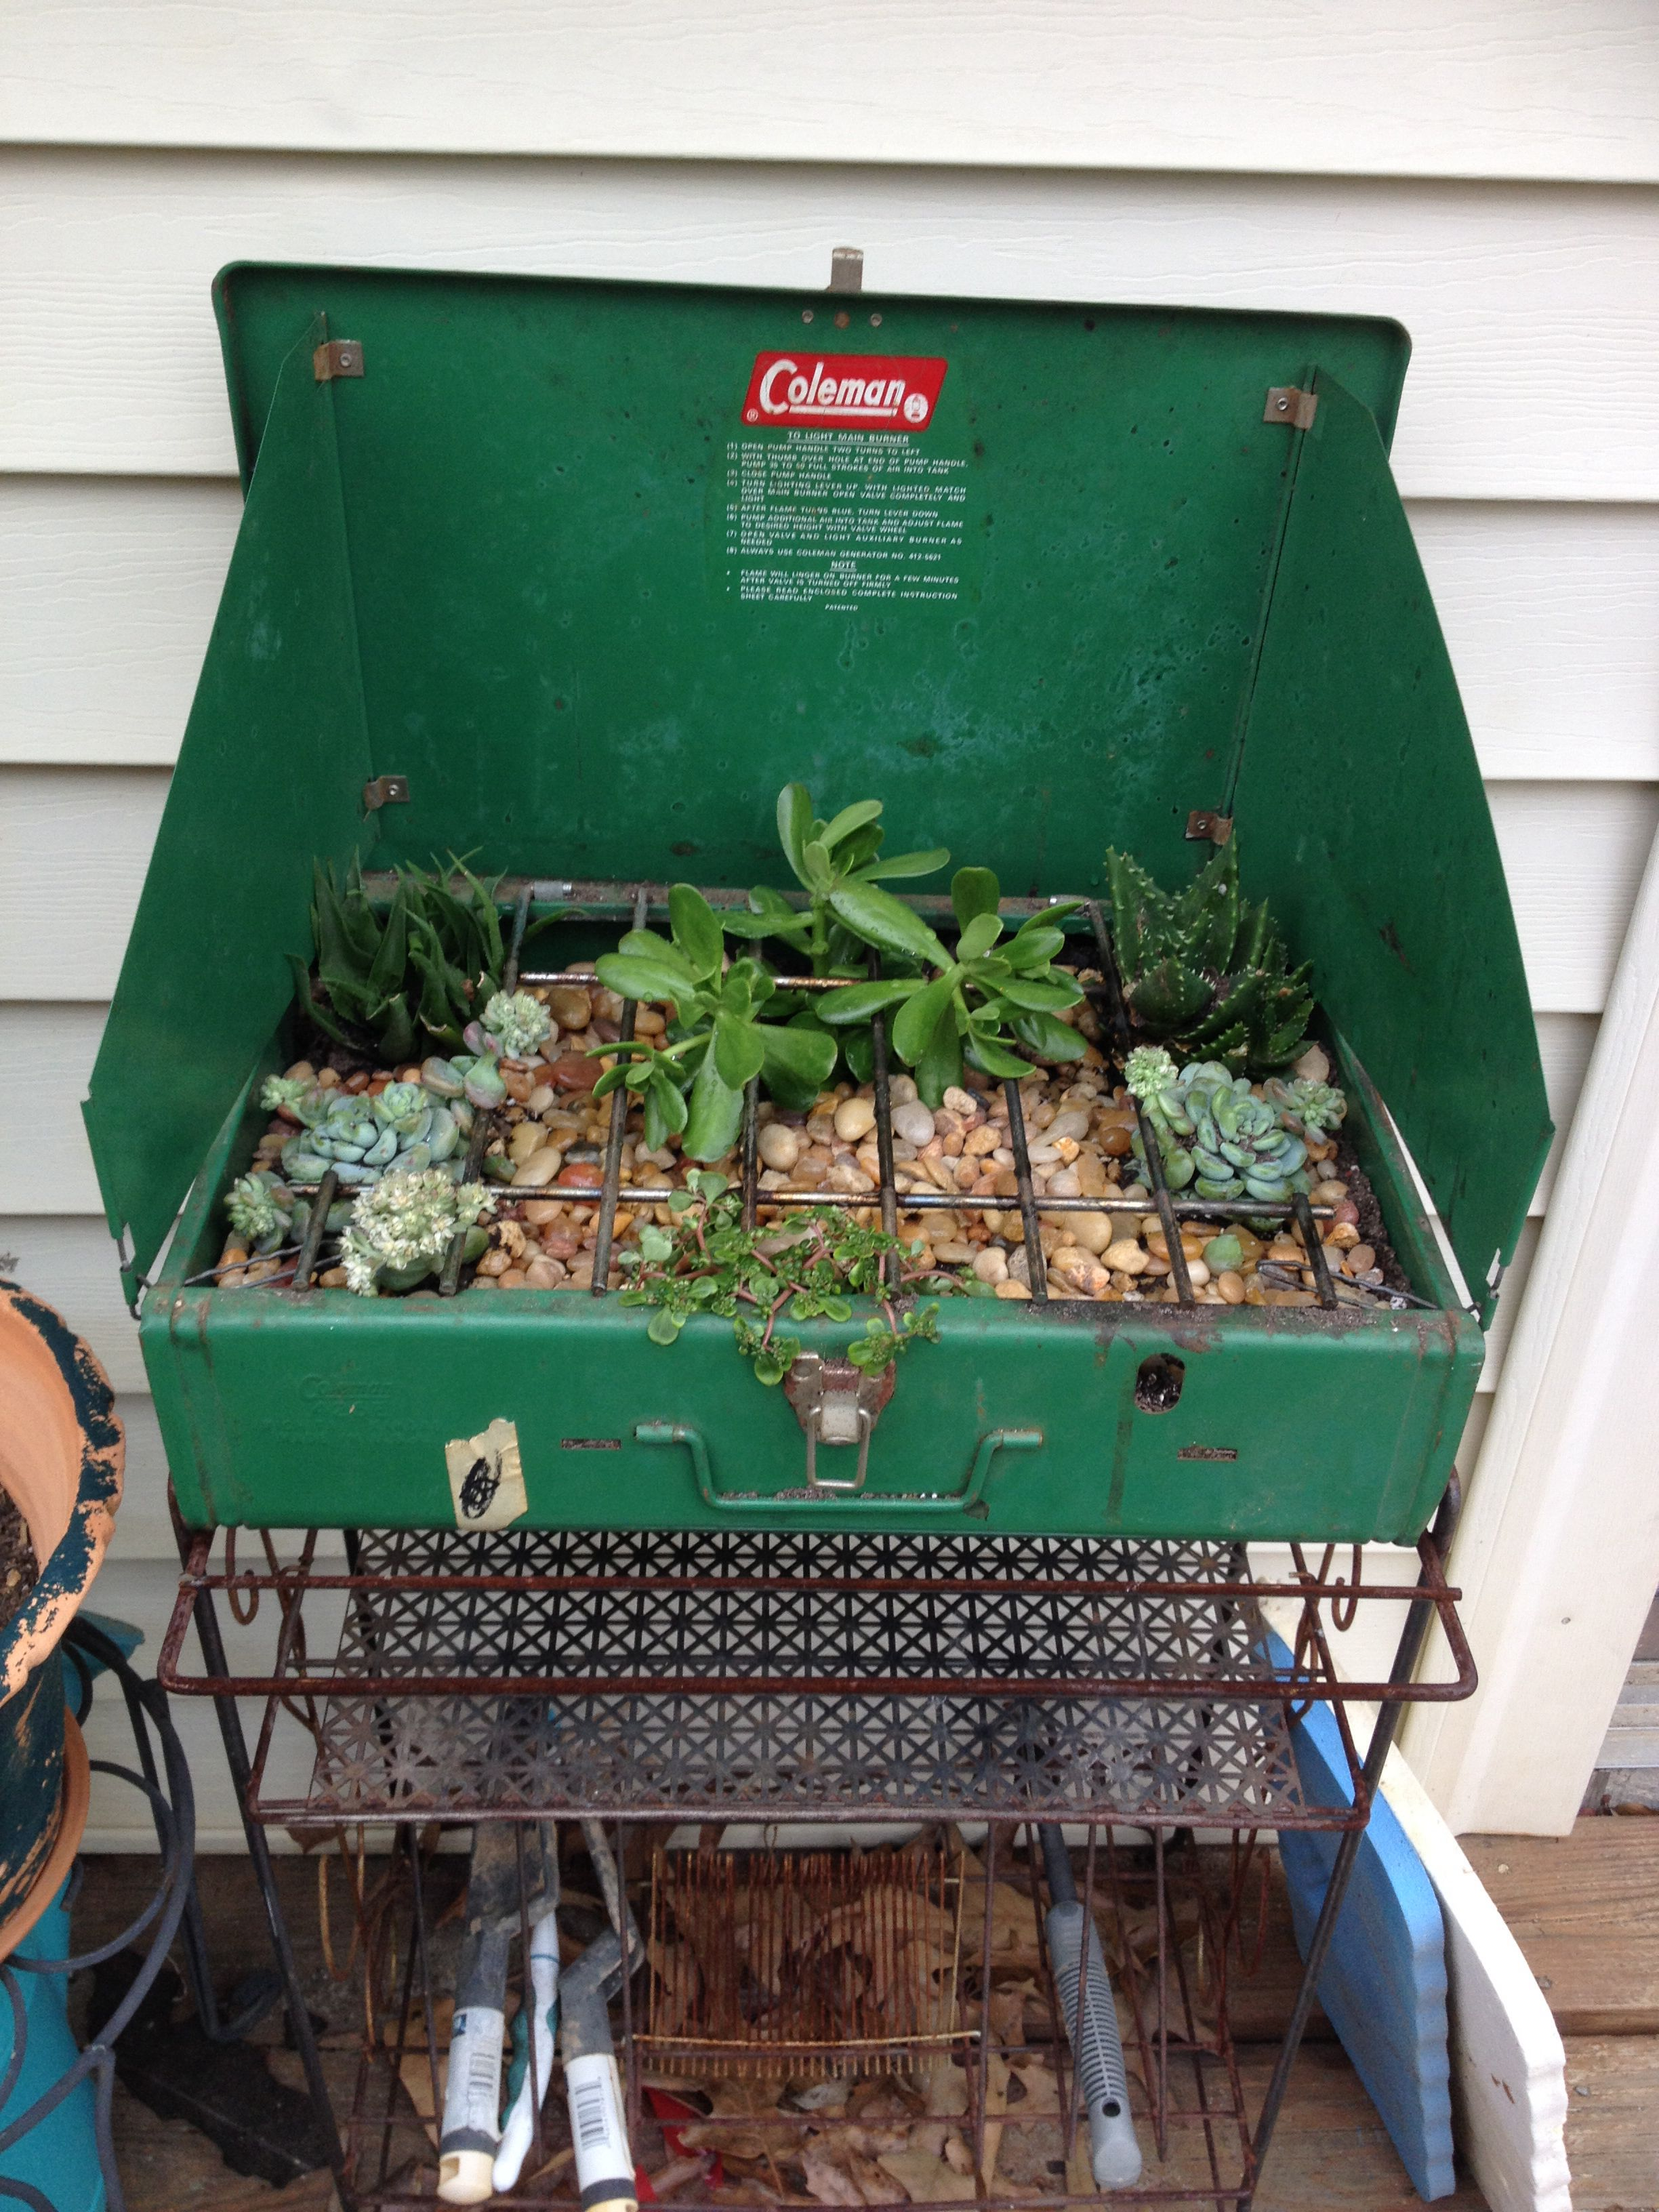 Coleman portable grill reused as a succulent planter